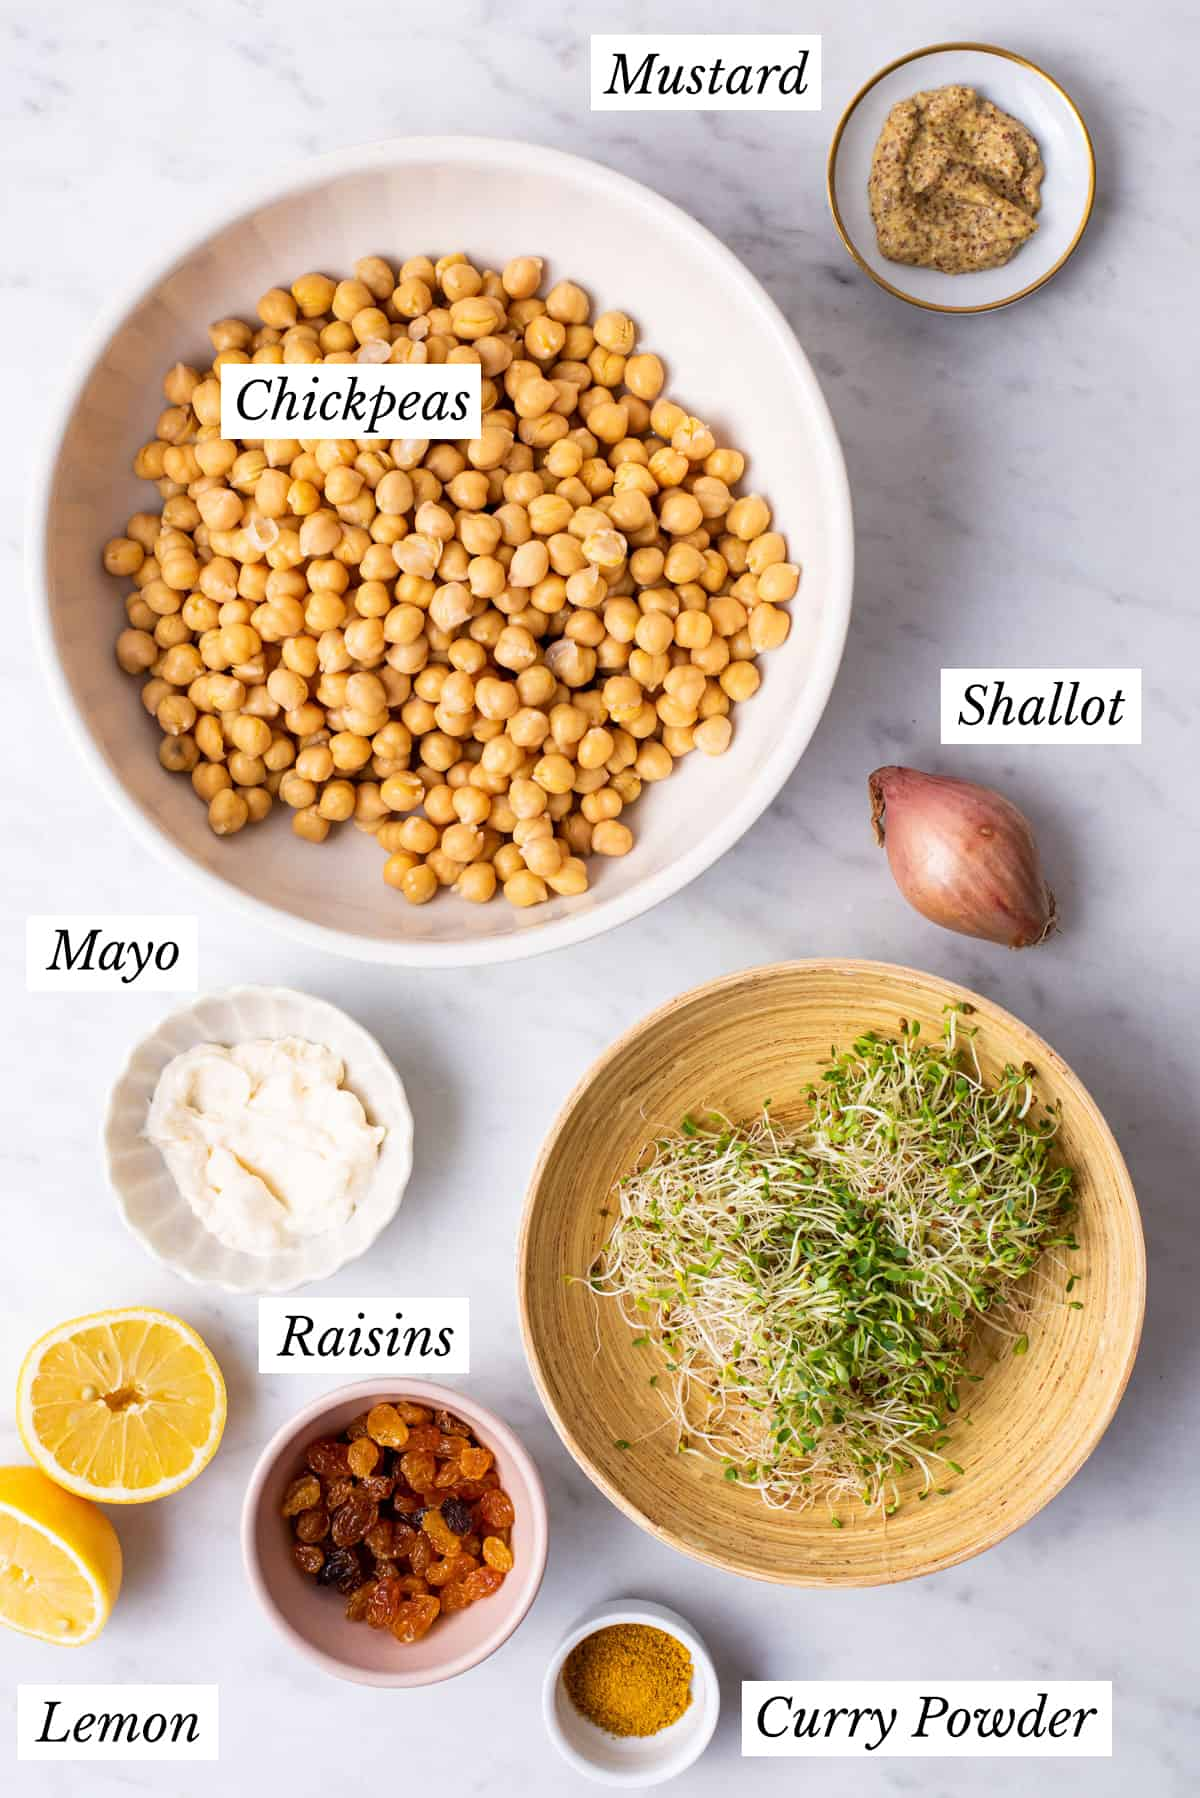 Curried chickpea salad in a while bowl